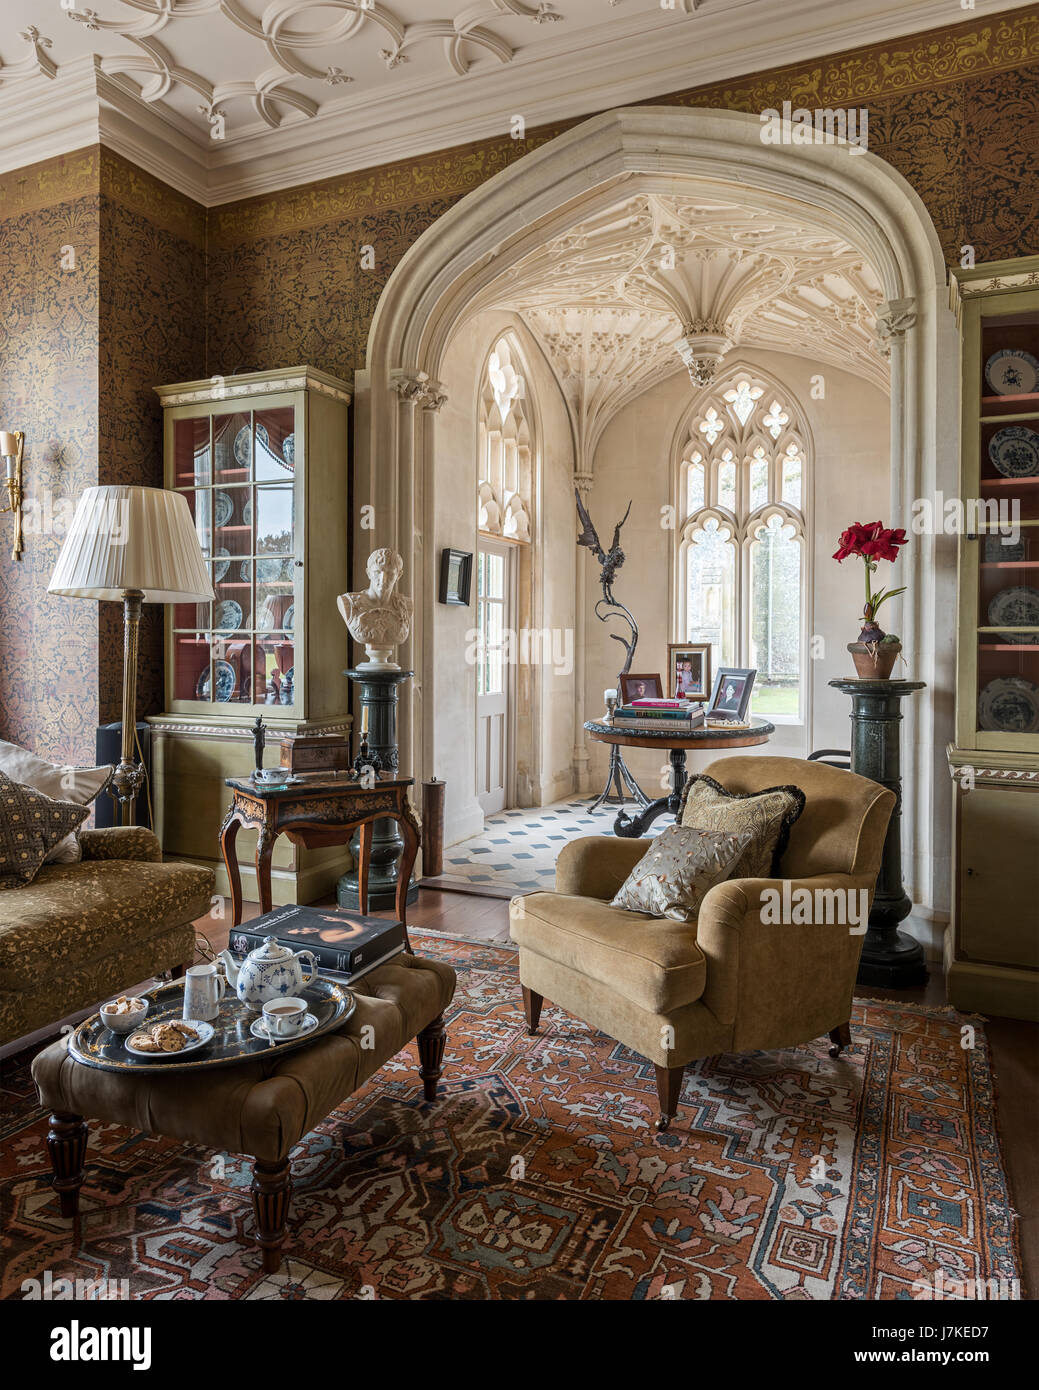 Patterned wallpaper by Zuber in library with antique persian rug and Gothic windows. The sofa